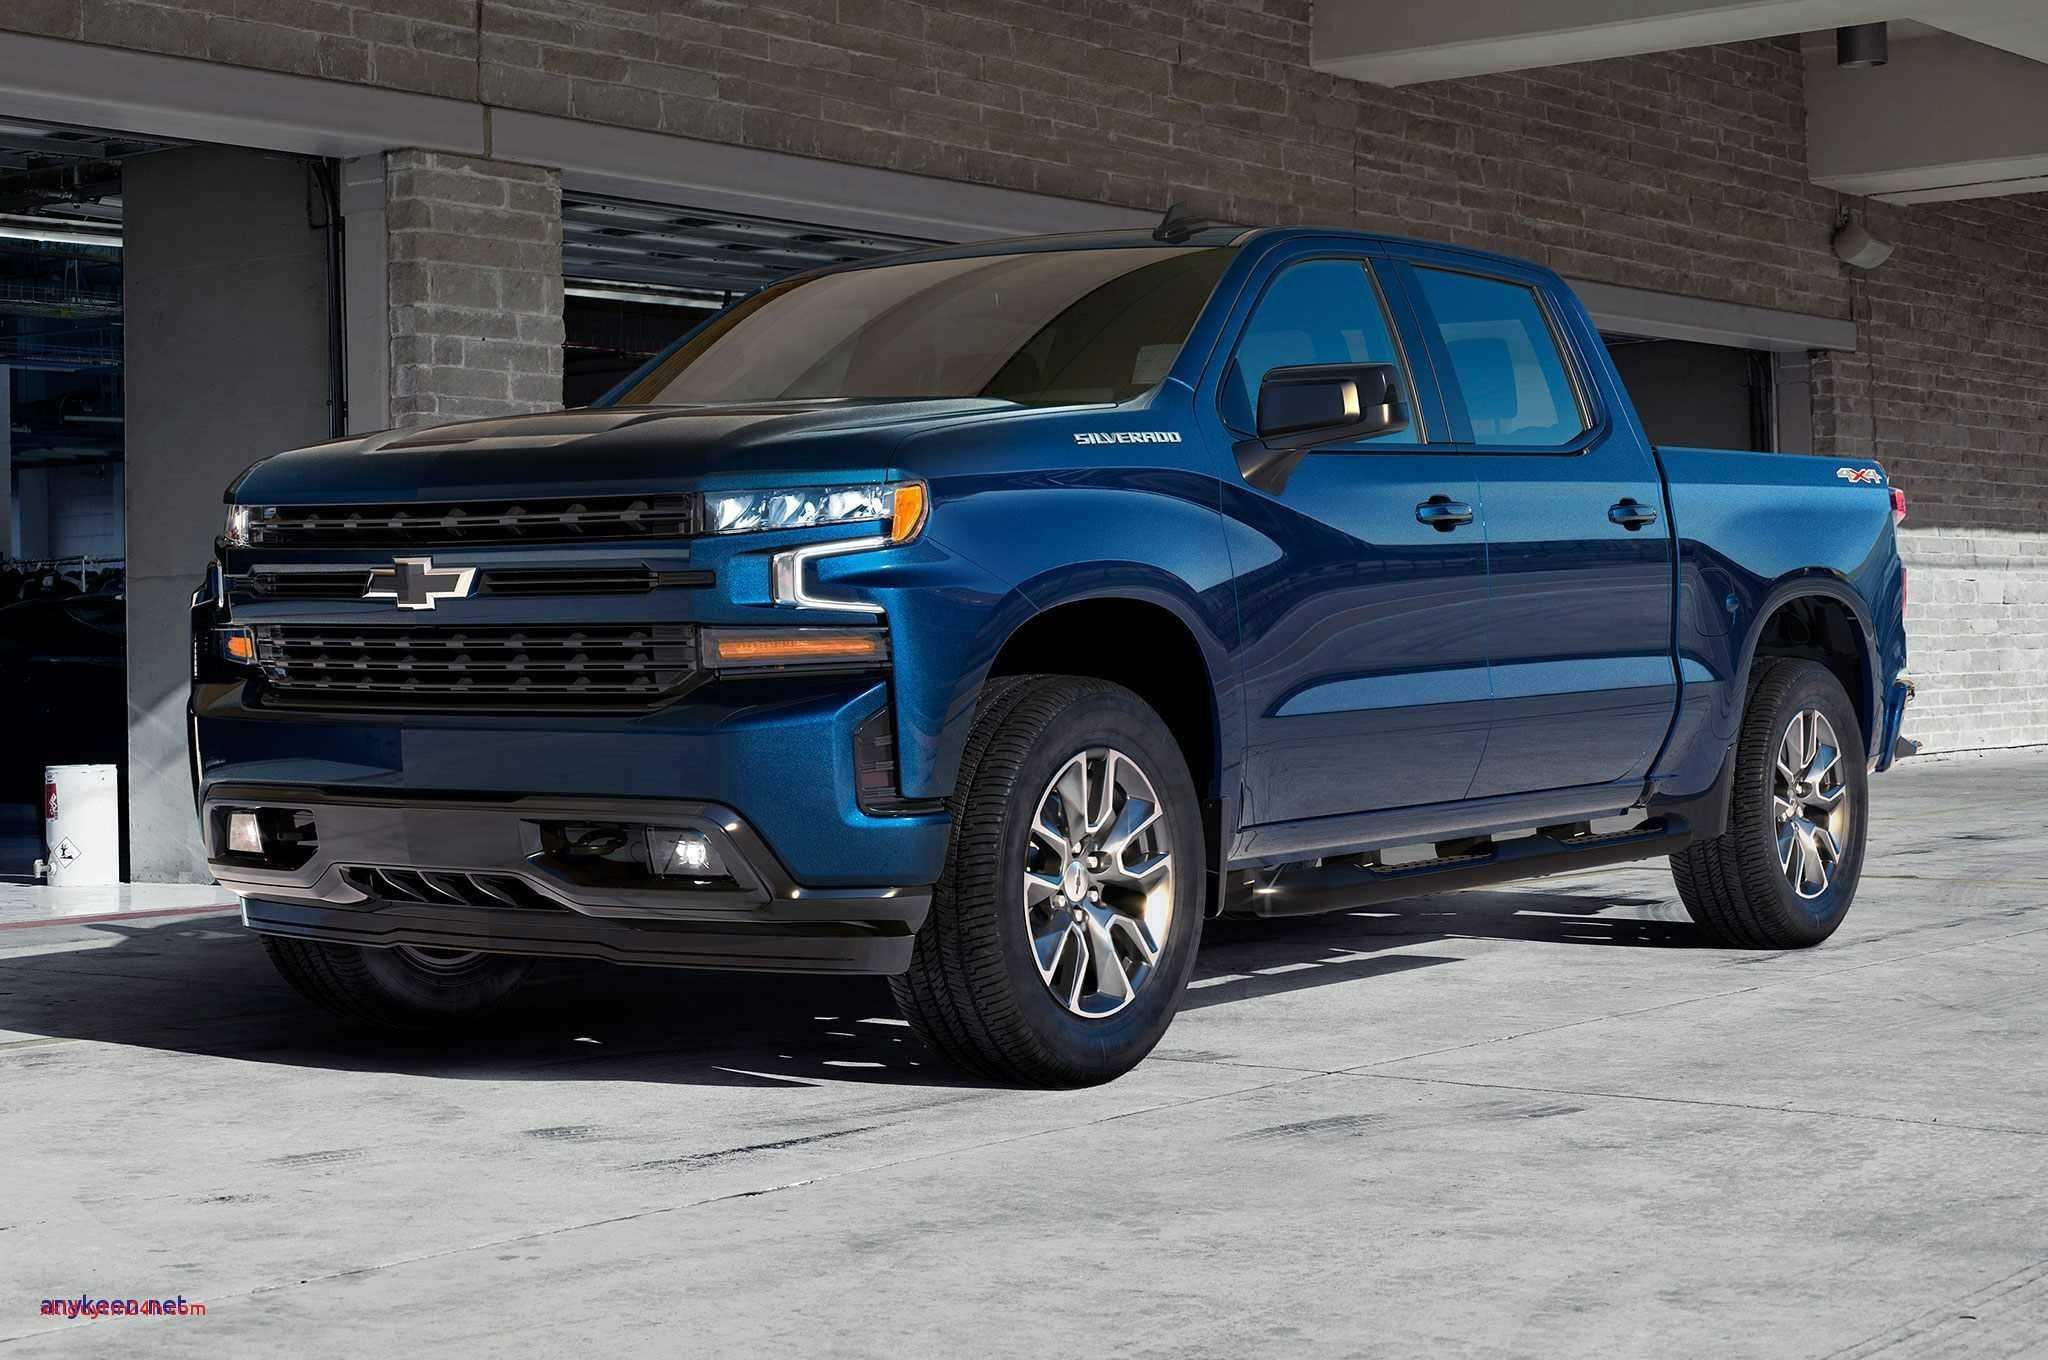 63 The 2019 Chevy Tahoe Z71 Ss Picture